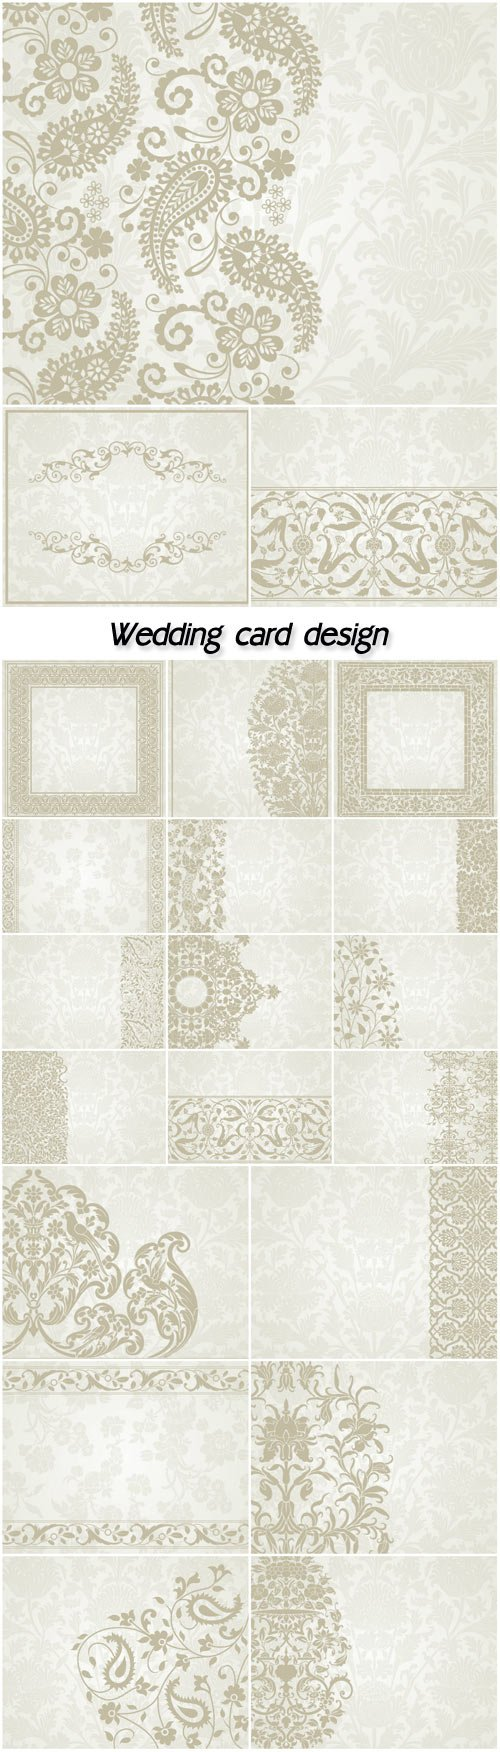 Wedding card design, paisley floral pattern, India